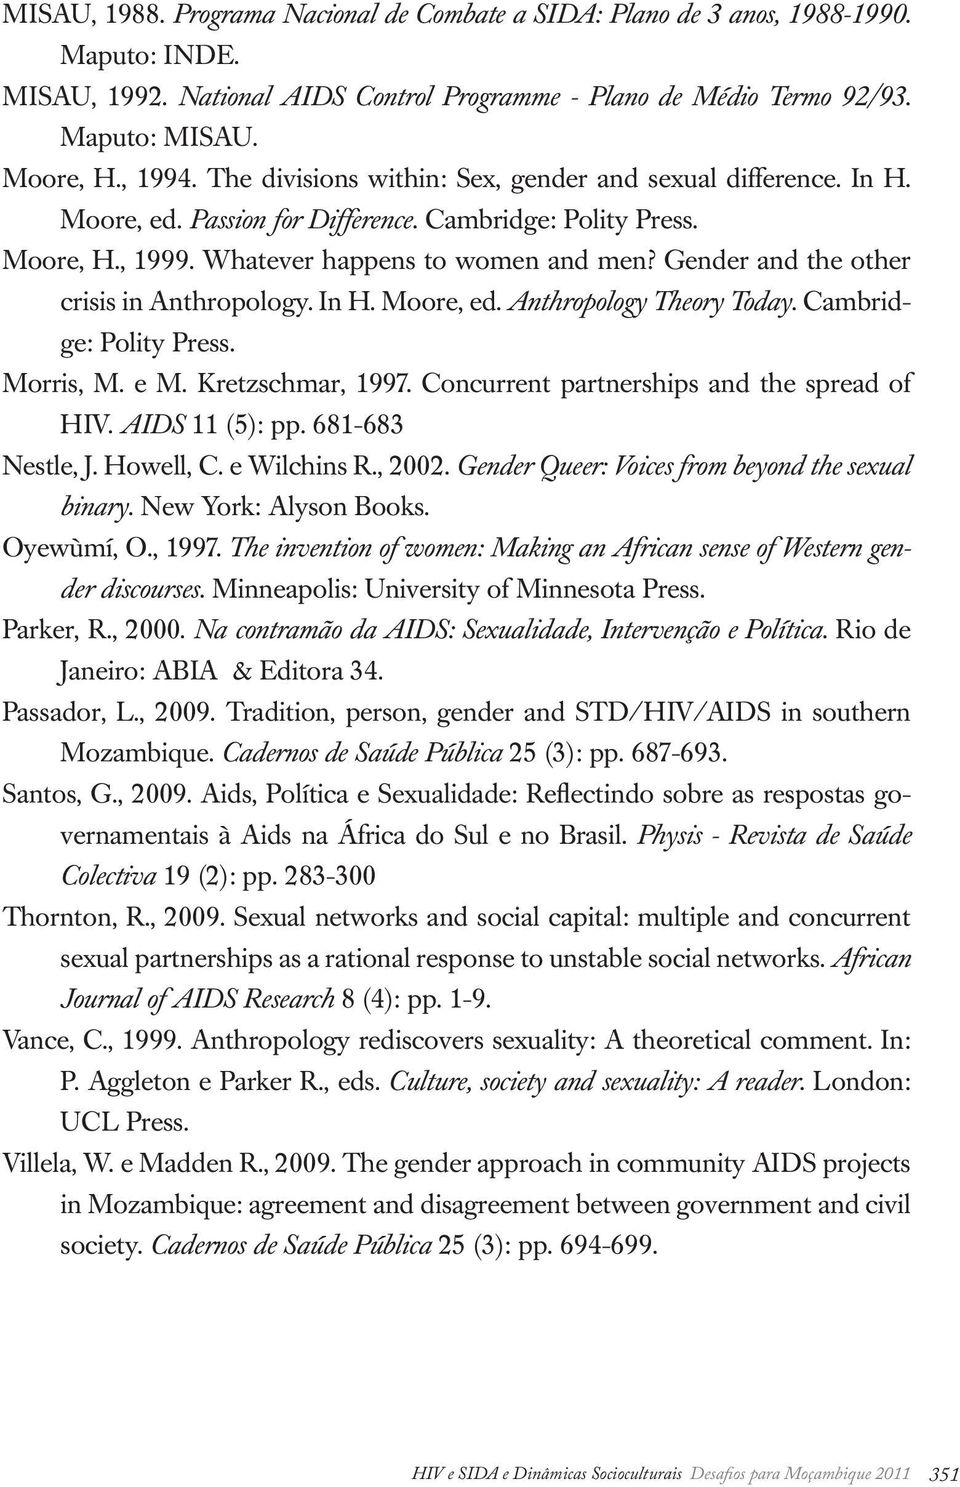 Gender and the other crisis in Anthropology. In H. Moore, ed. Anthropology Theory Today. Cambridge: Polity Press. Morris, M. e M. Kretzschmar, 1997. Concurrent partnerships and the spread of HIV.